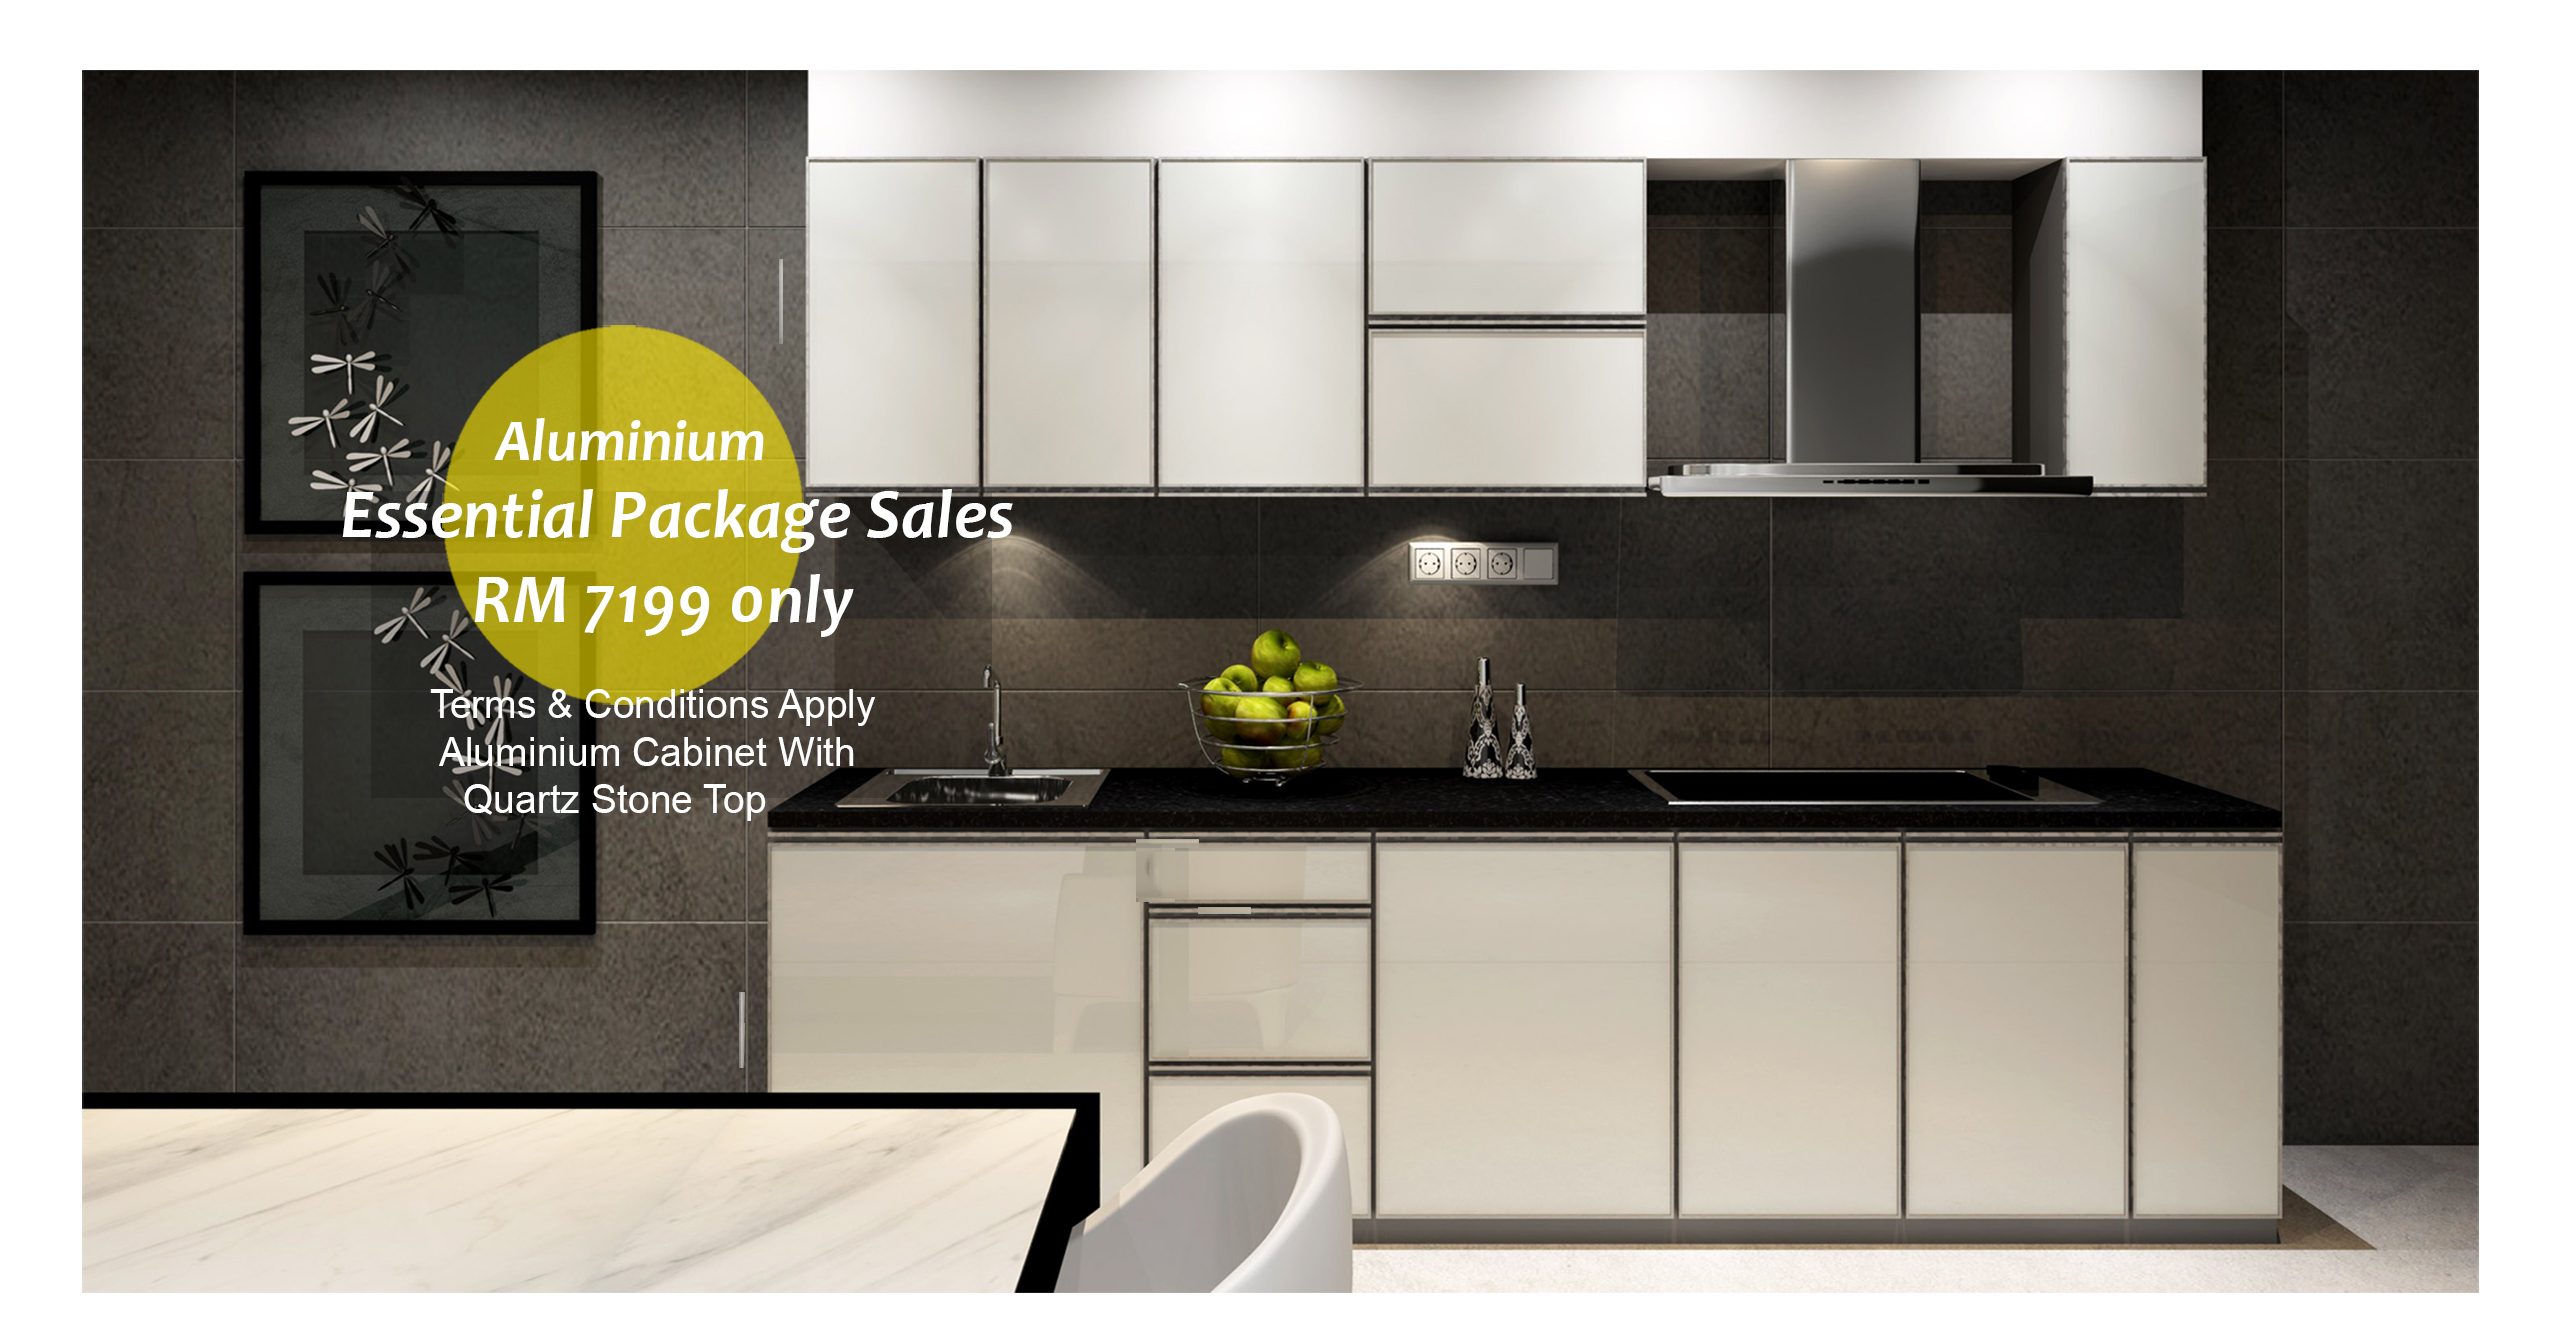 Advantages And Disadvantages Of The Aluminium Kitchen